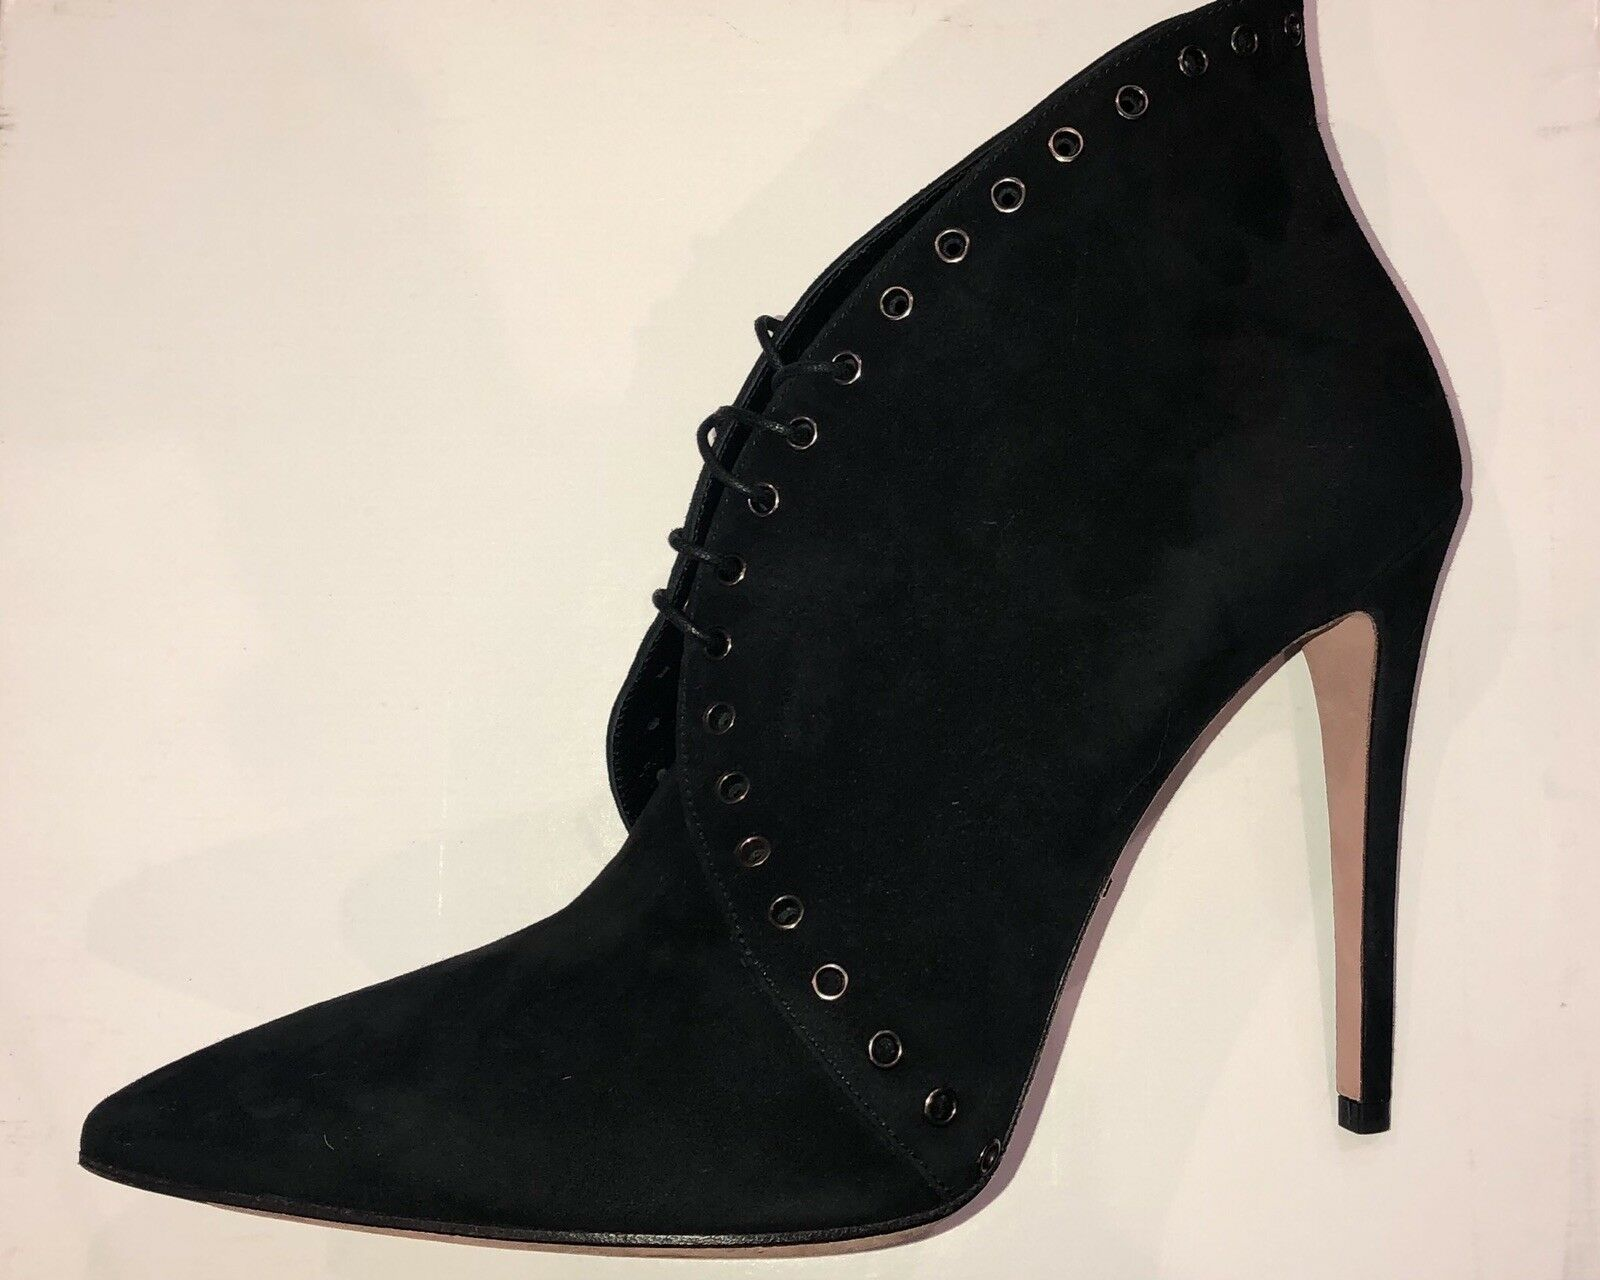 Prada women shoes heel   bootie size 40 black suede